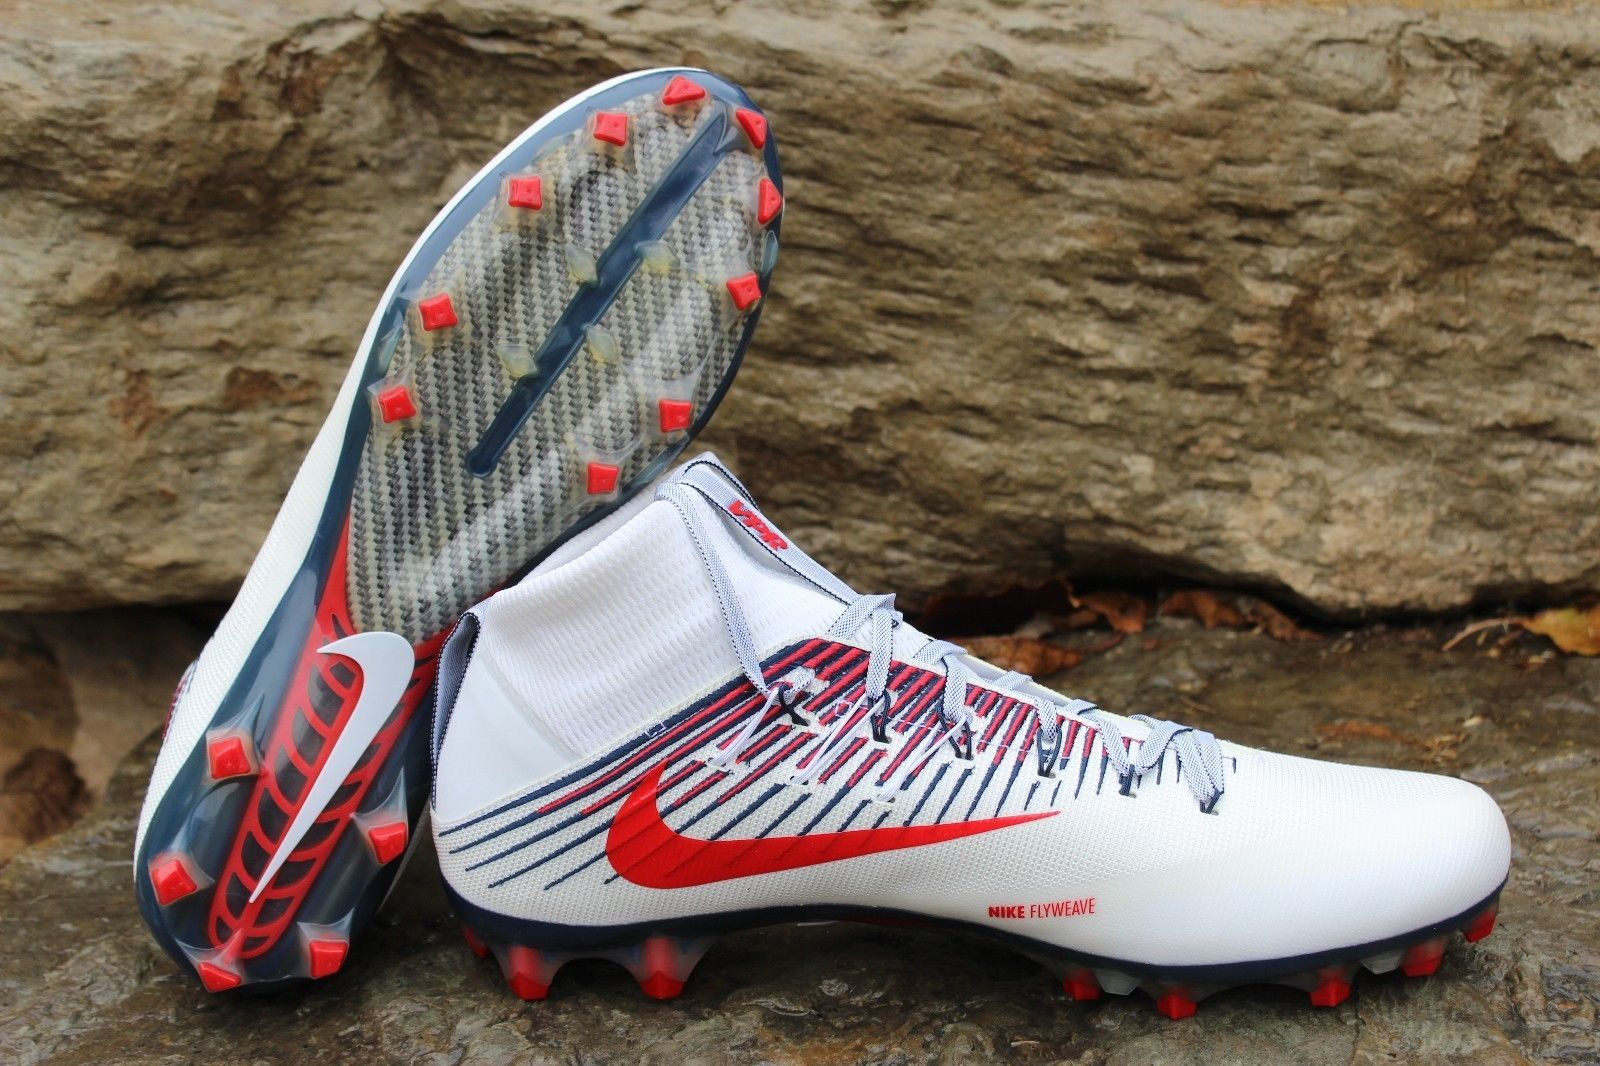 ab8c9201ee01 Nike Vapor Untouchable 2 Football Cleats and 15 similar items. 4